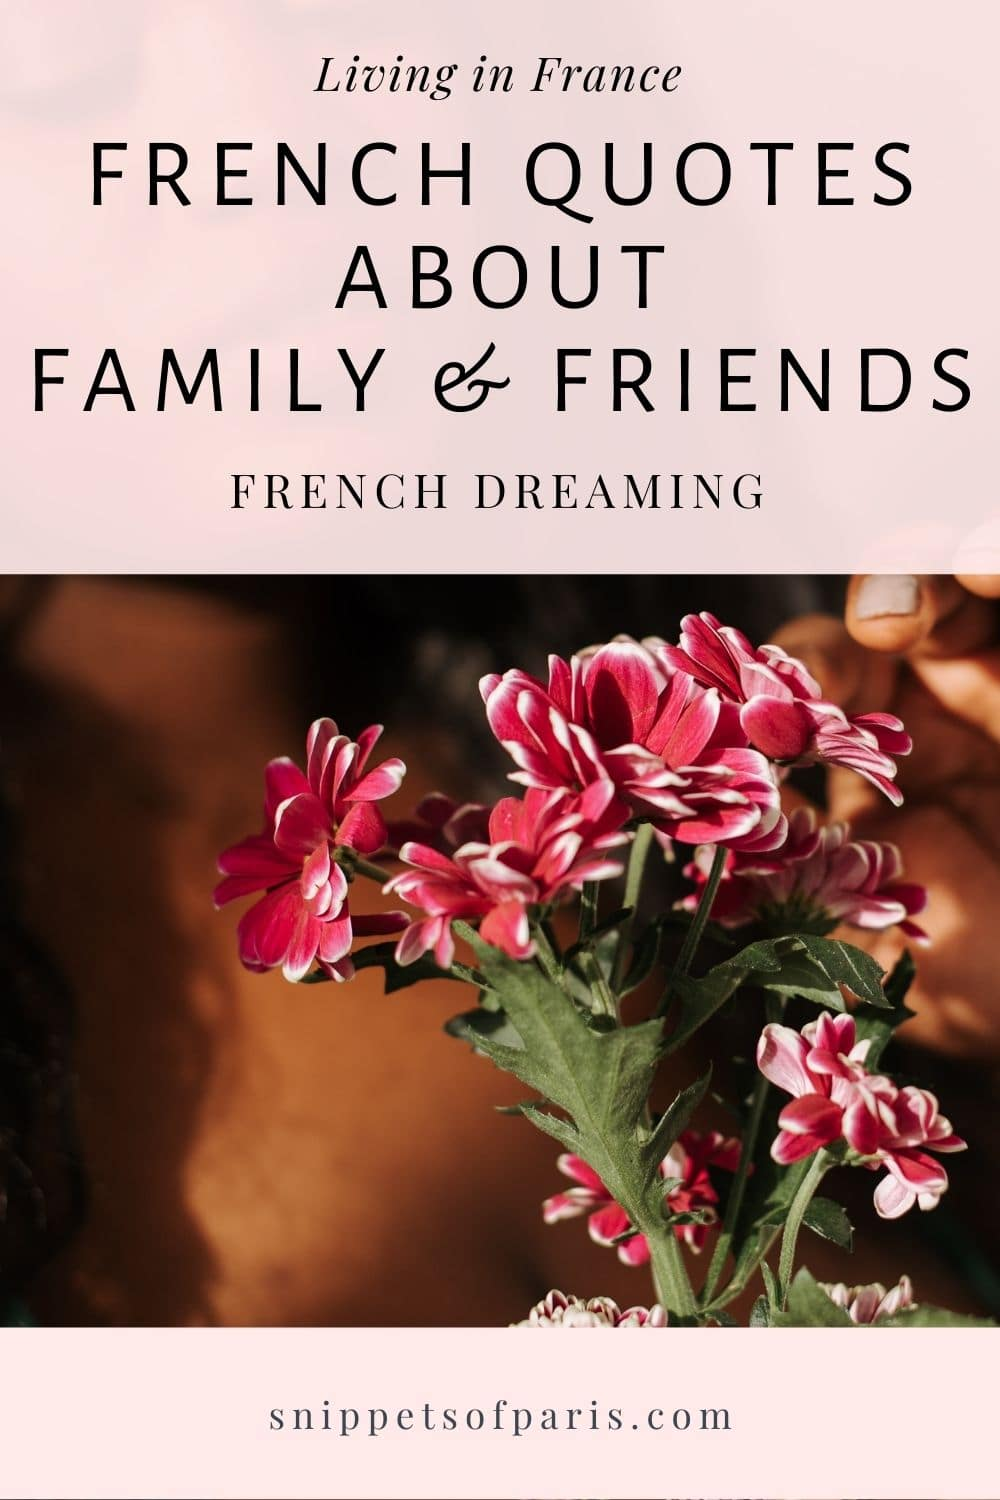 35 French quotes about friendship and family